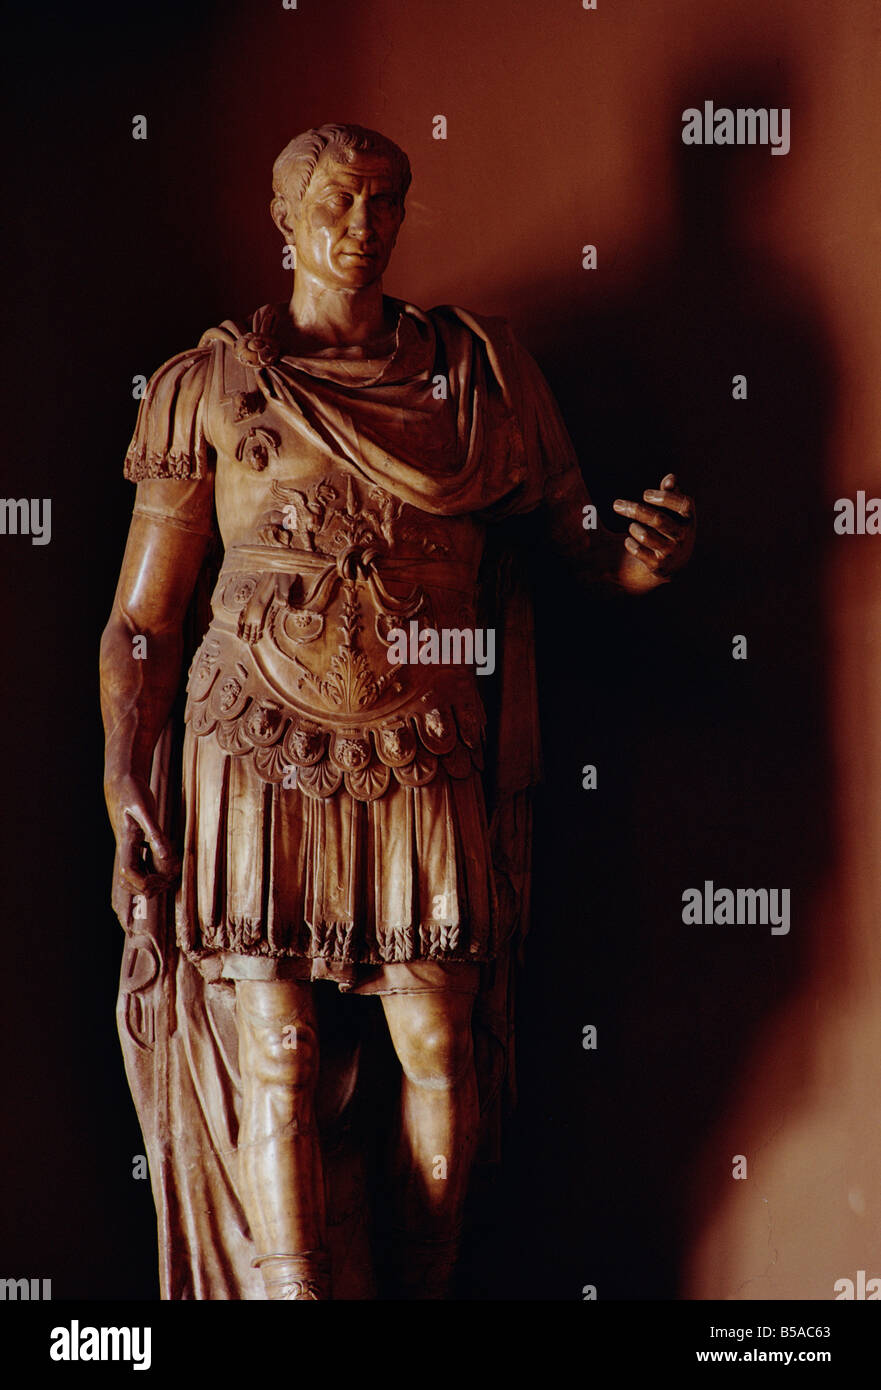 Statue of Julius Caesar in the Council Chamber, Capitol Hill, Rome, Lazio, Italy, Europe - Stock Image